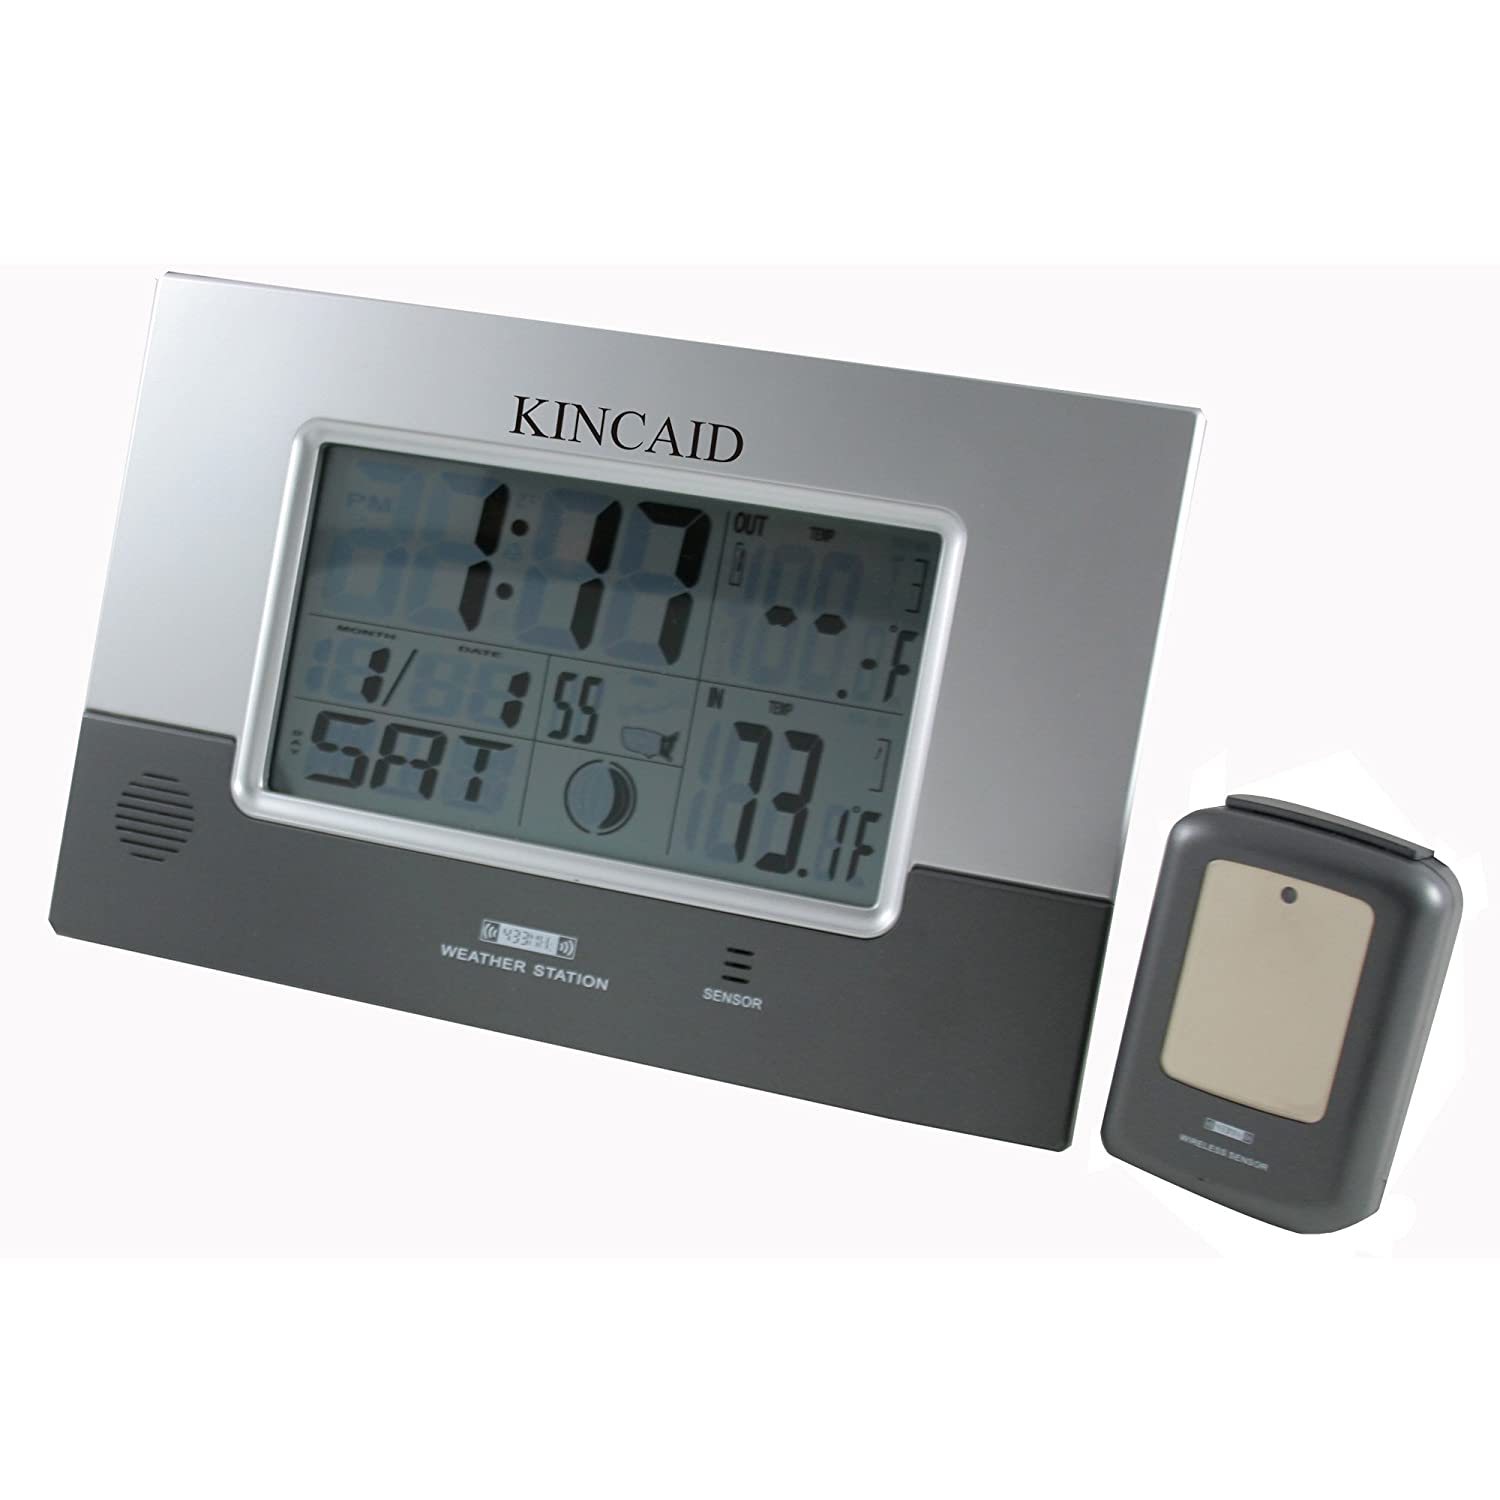 Amazon kincaid wall mounted digital weather station clock amazon kincaid wall mounted digital weather station clock with remote sensor home kitchen amipublicfo Image collections